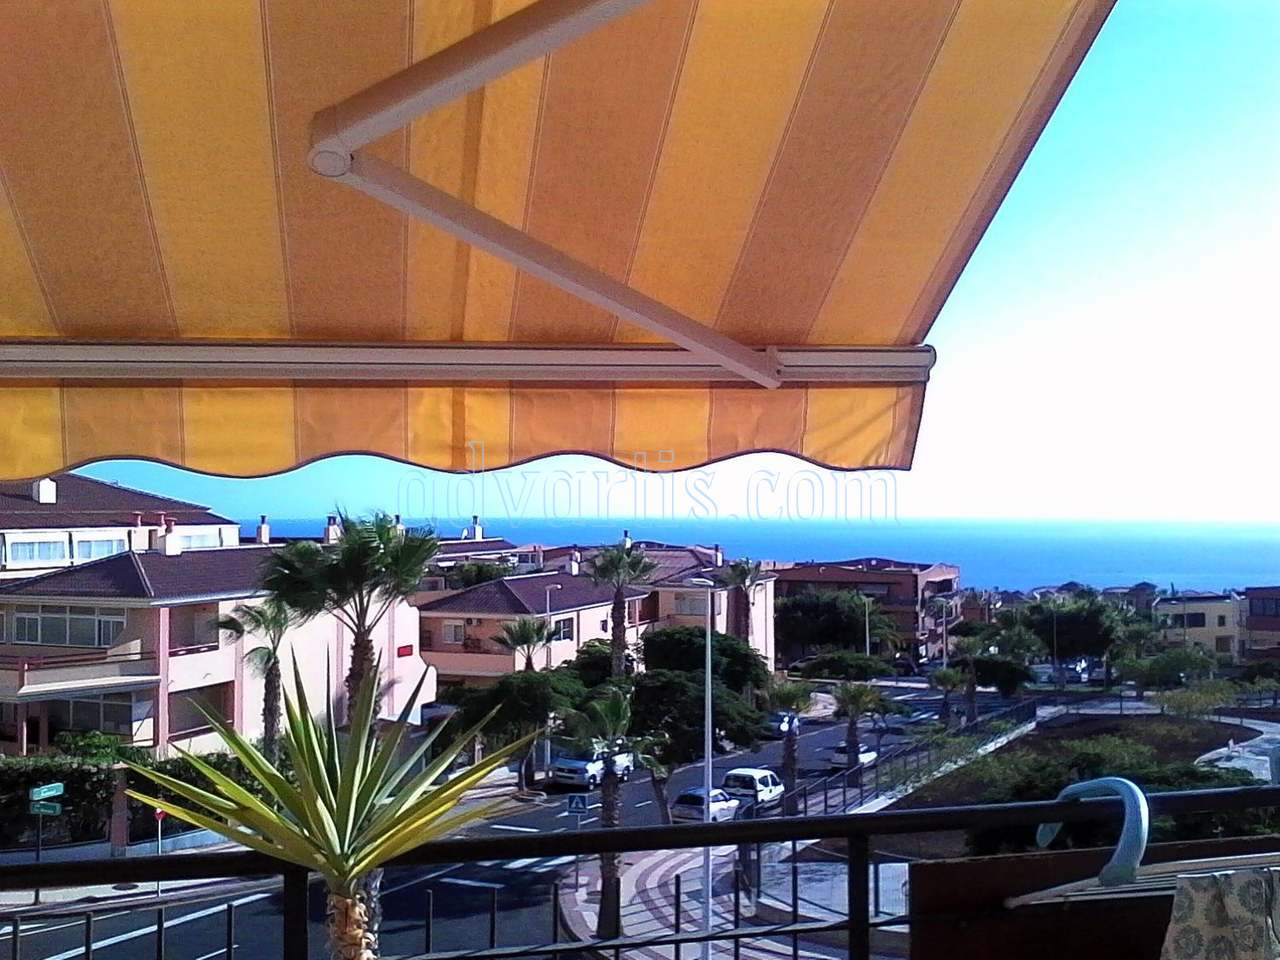 2 bedroom apartment for sale in Adeje, Tenerife €230.000